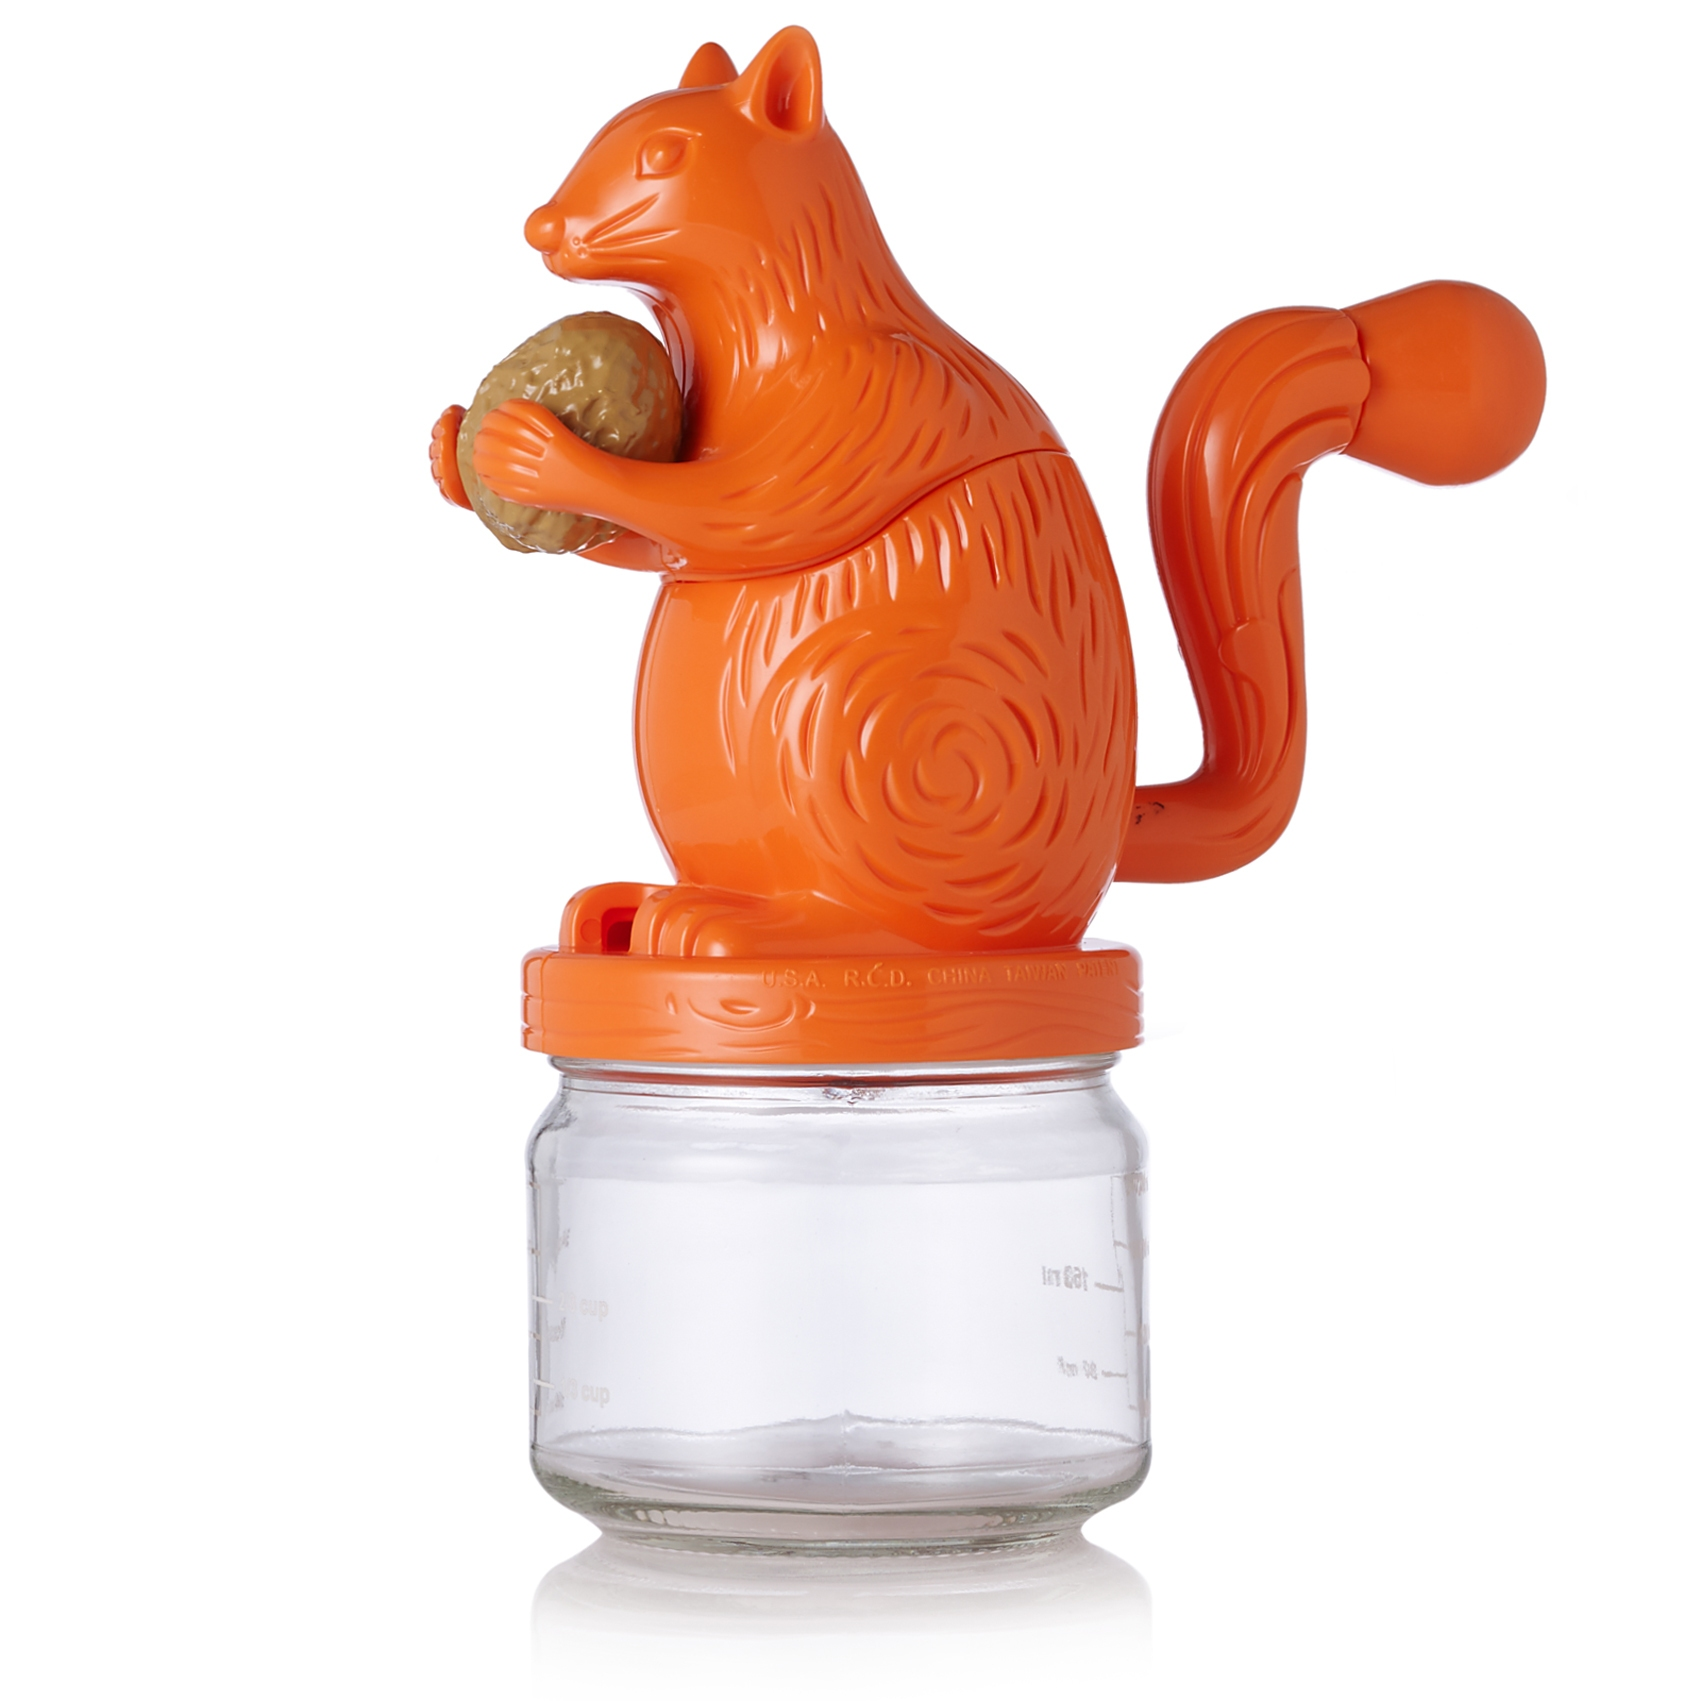 Nuts novelty squirrel nut grinder and chopper fresh design blog - Squirrel nut crackers ...